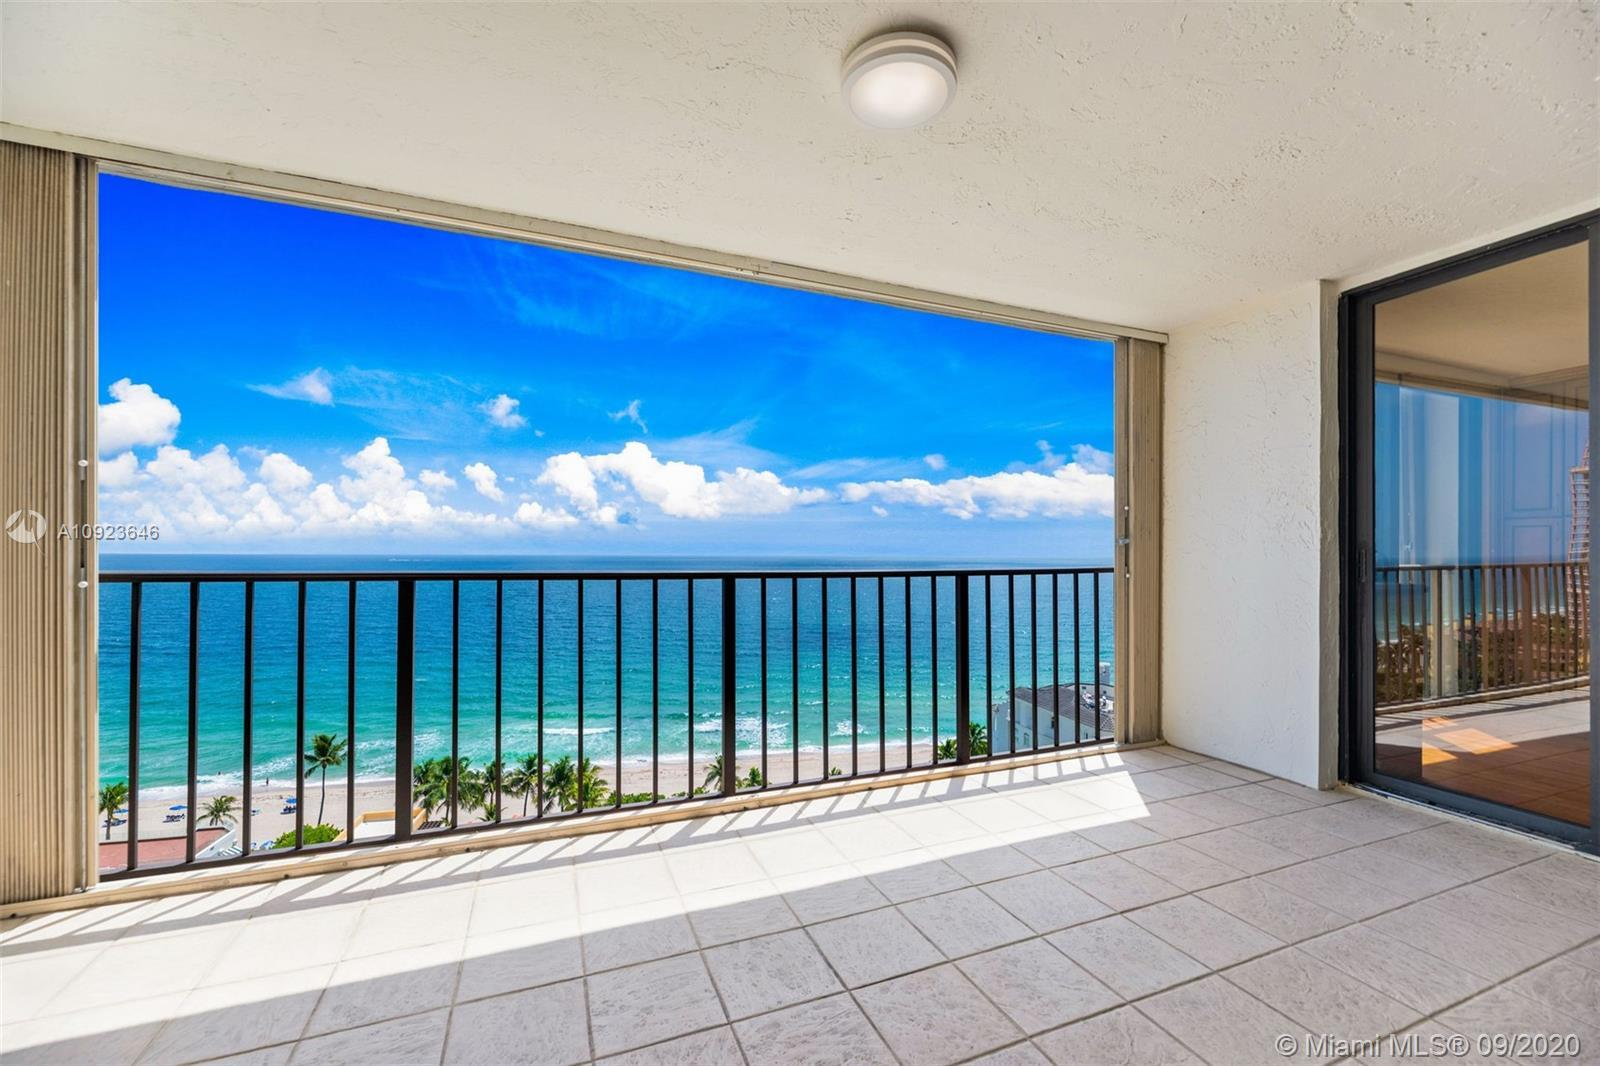 MAGNIFICENT DIRECT OCEANFRONT VIEW! ENJOY THE WONDERFUL LIFESTYLE BY THE SEA IN THIS OPEN AND SPACIO